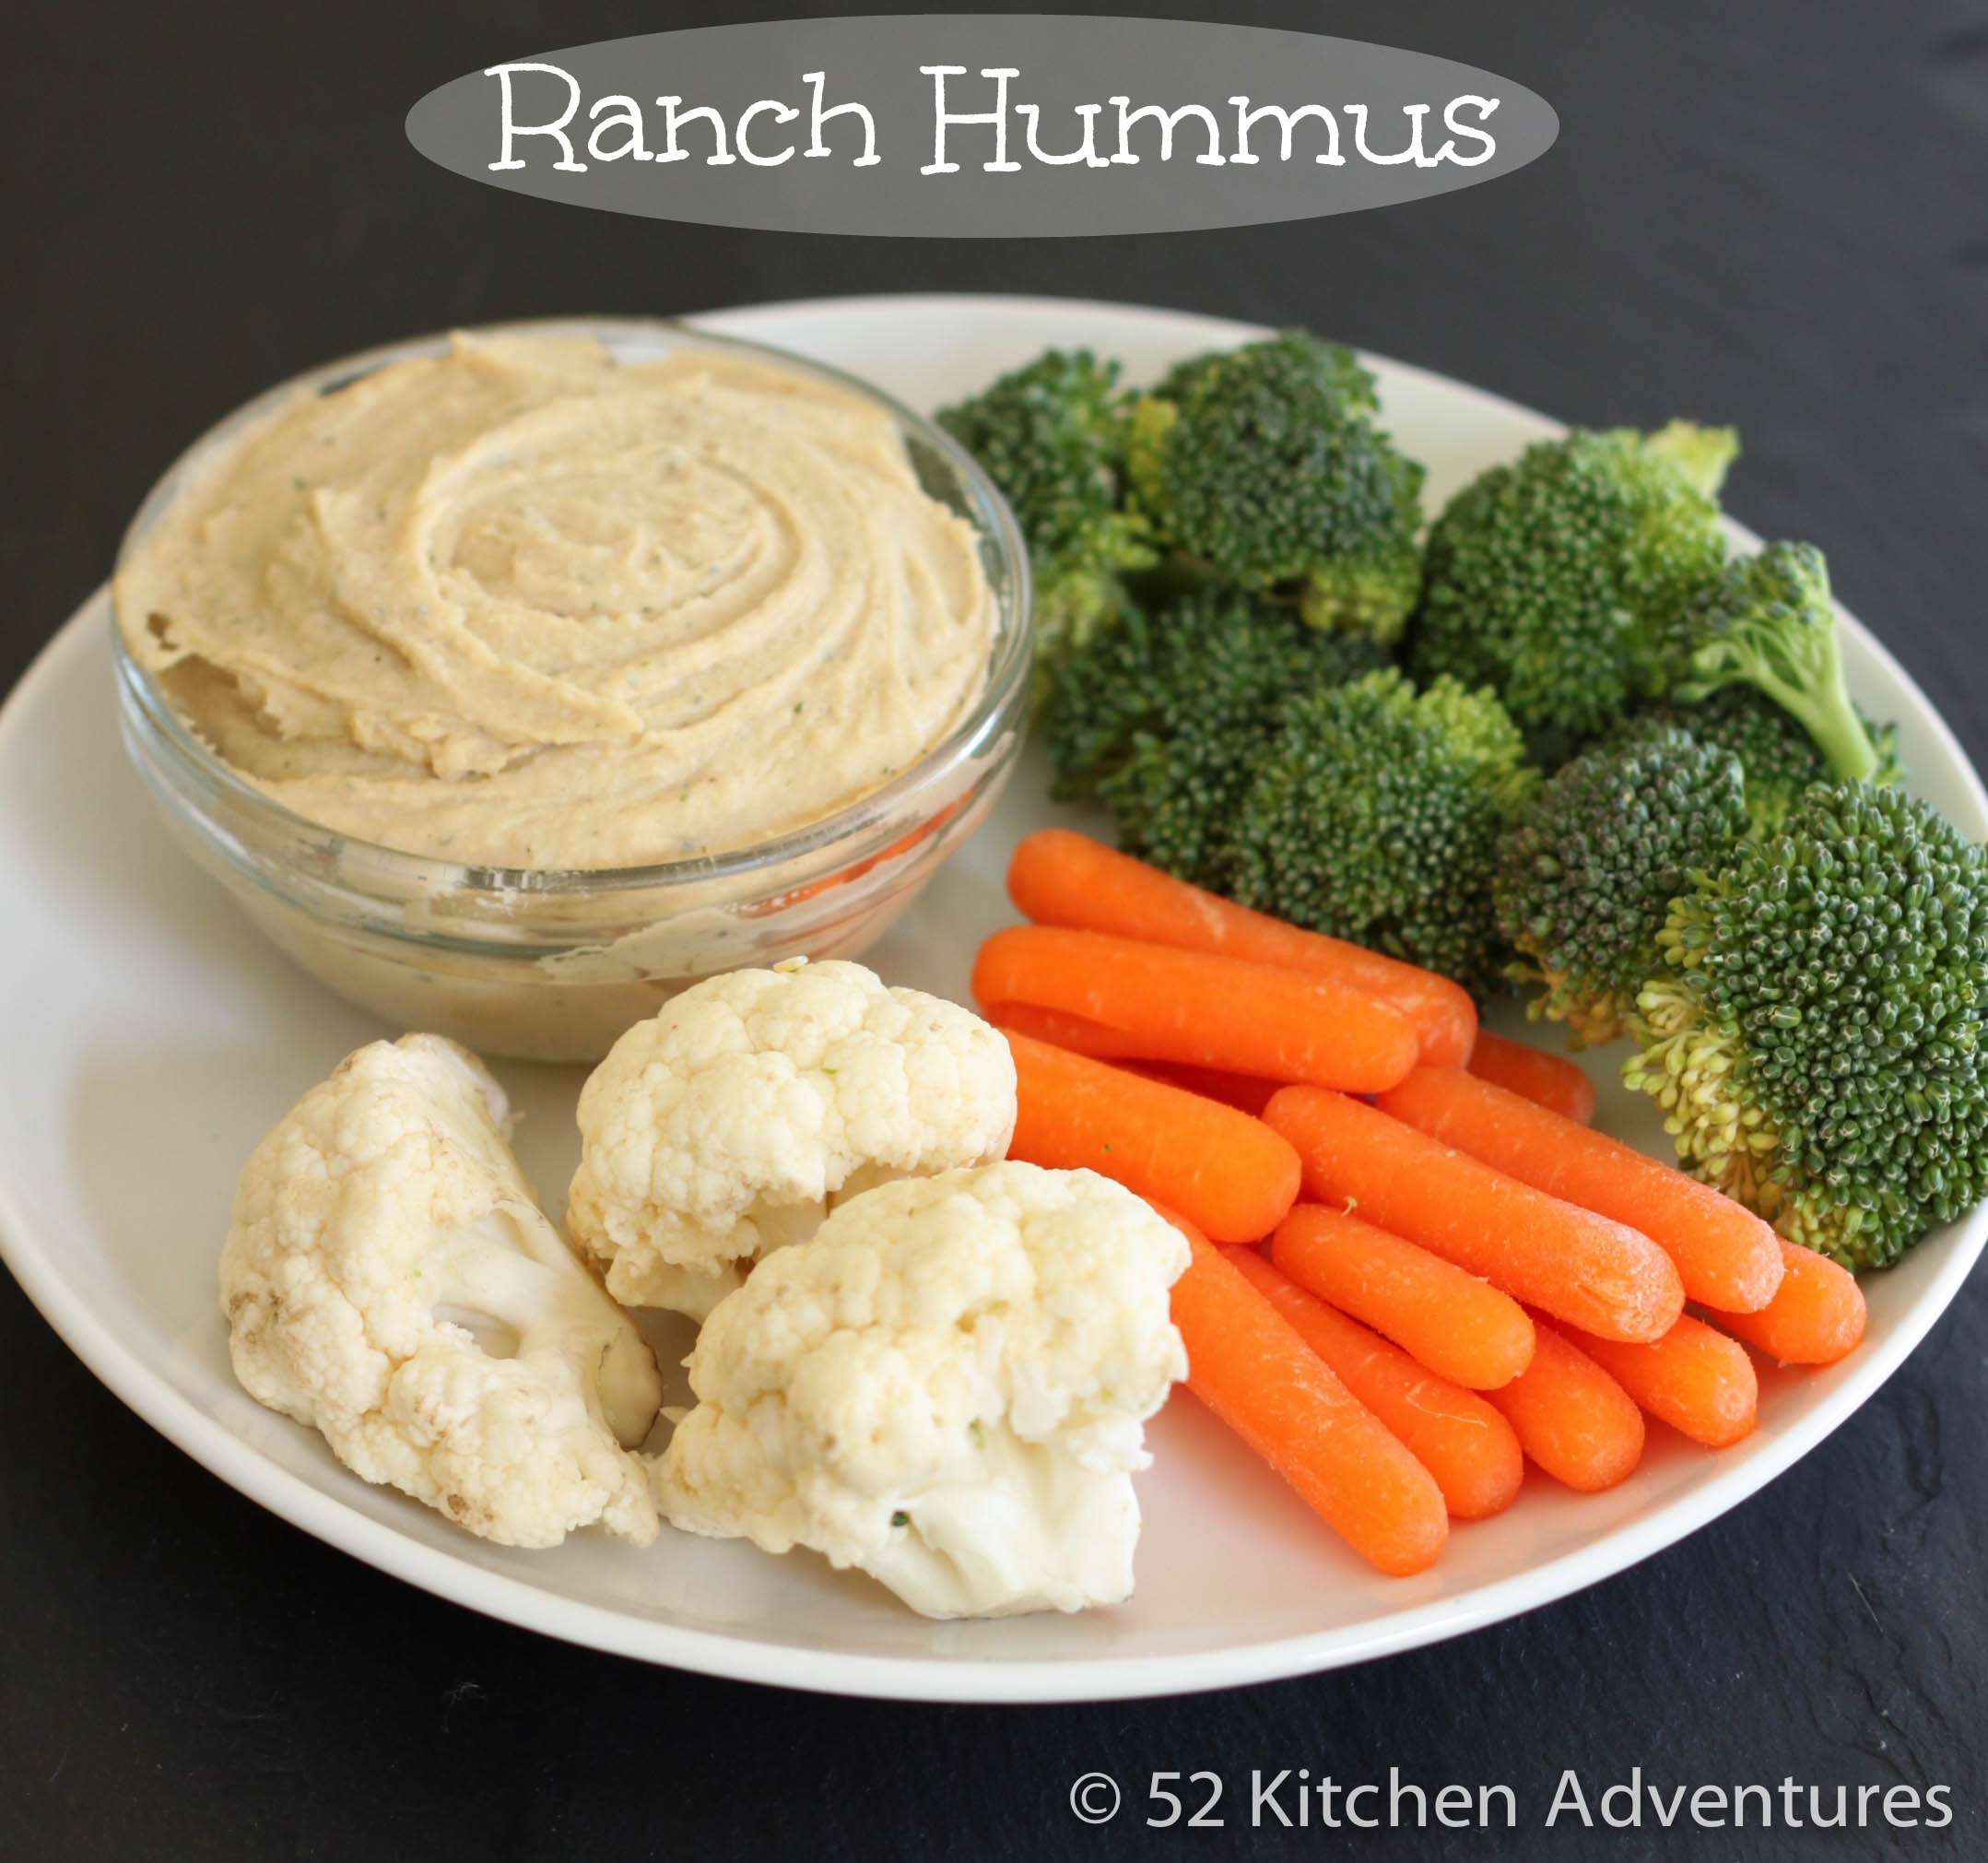 Recipe: Ranch hummus